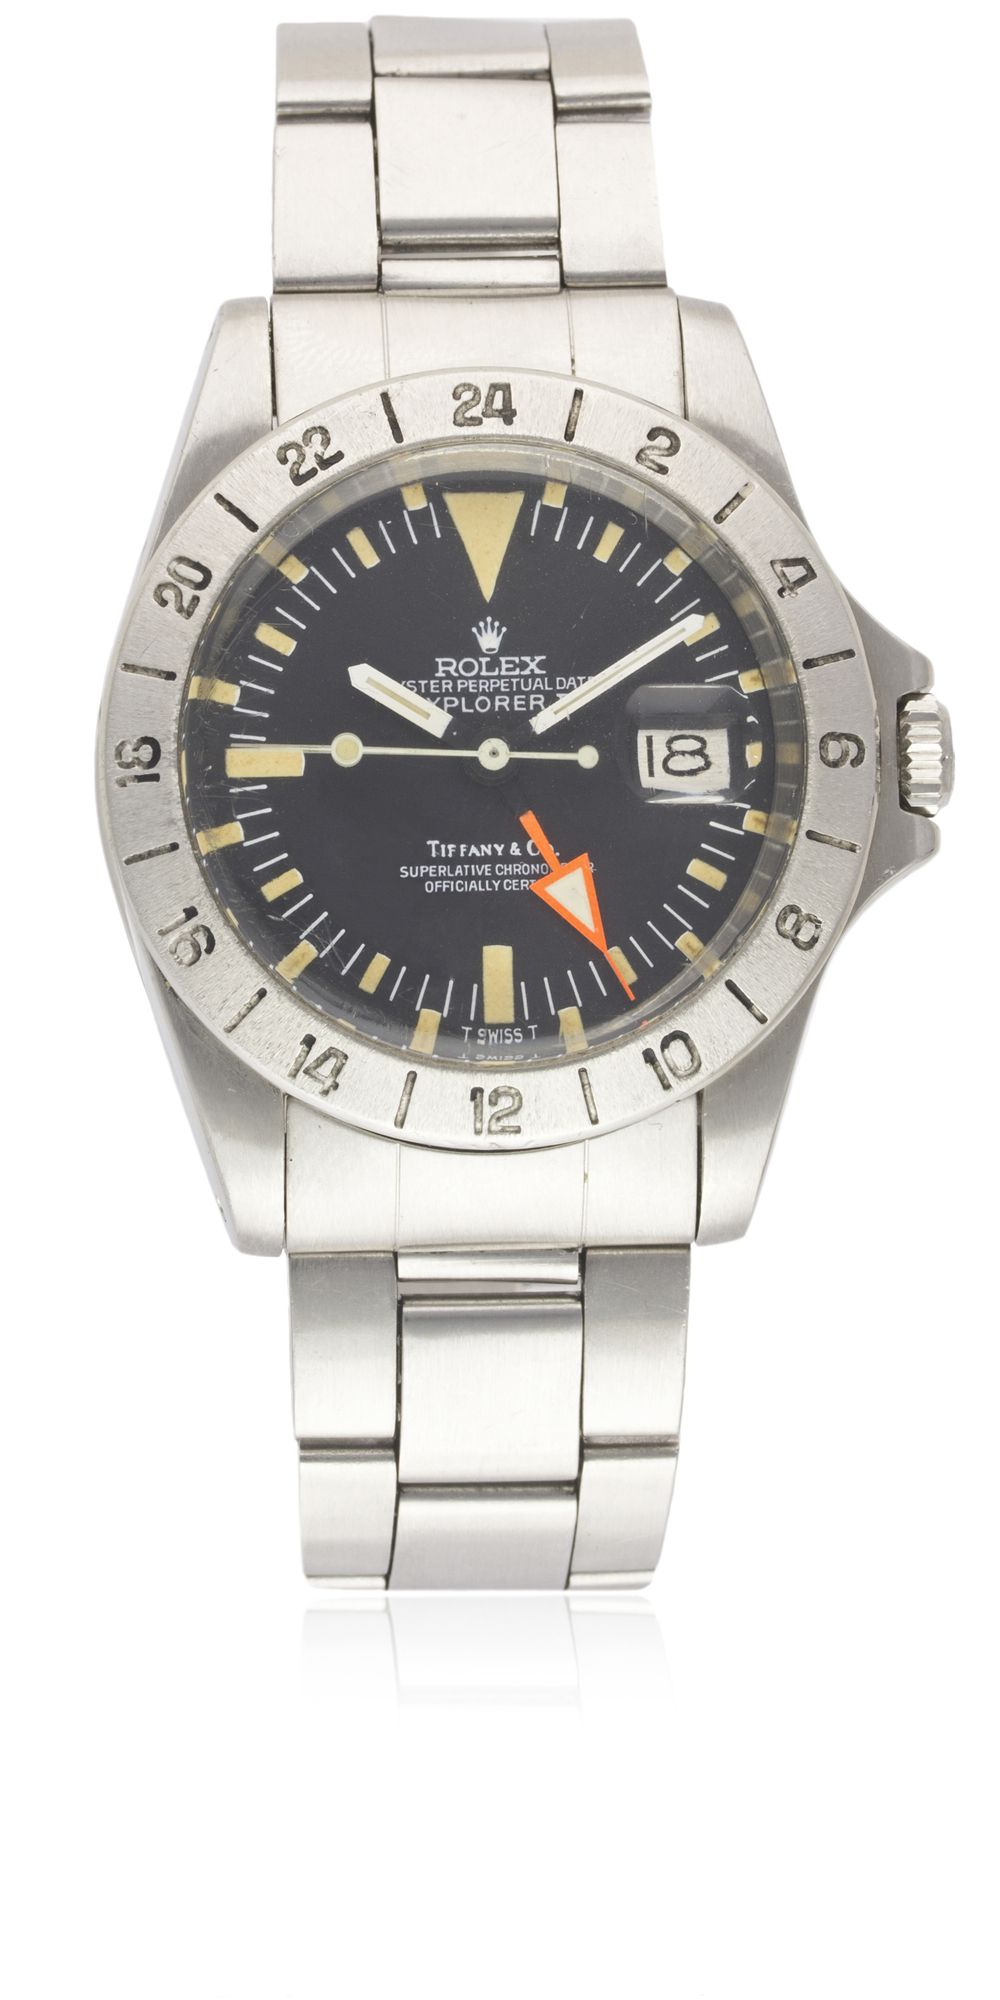 "A VERY RARE GENTLEMAN'S STAINLESS STEEL ROLEX OYSTER PERPETUAL DATE EXPLORER II ""ORANGE HAND"" - Image 3 of 13"